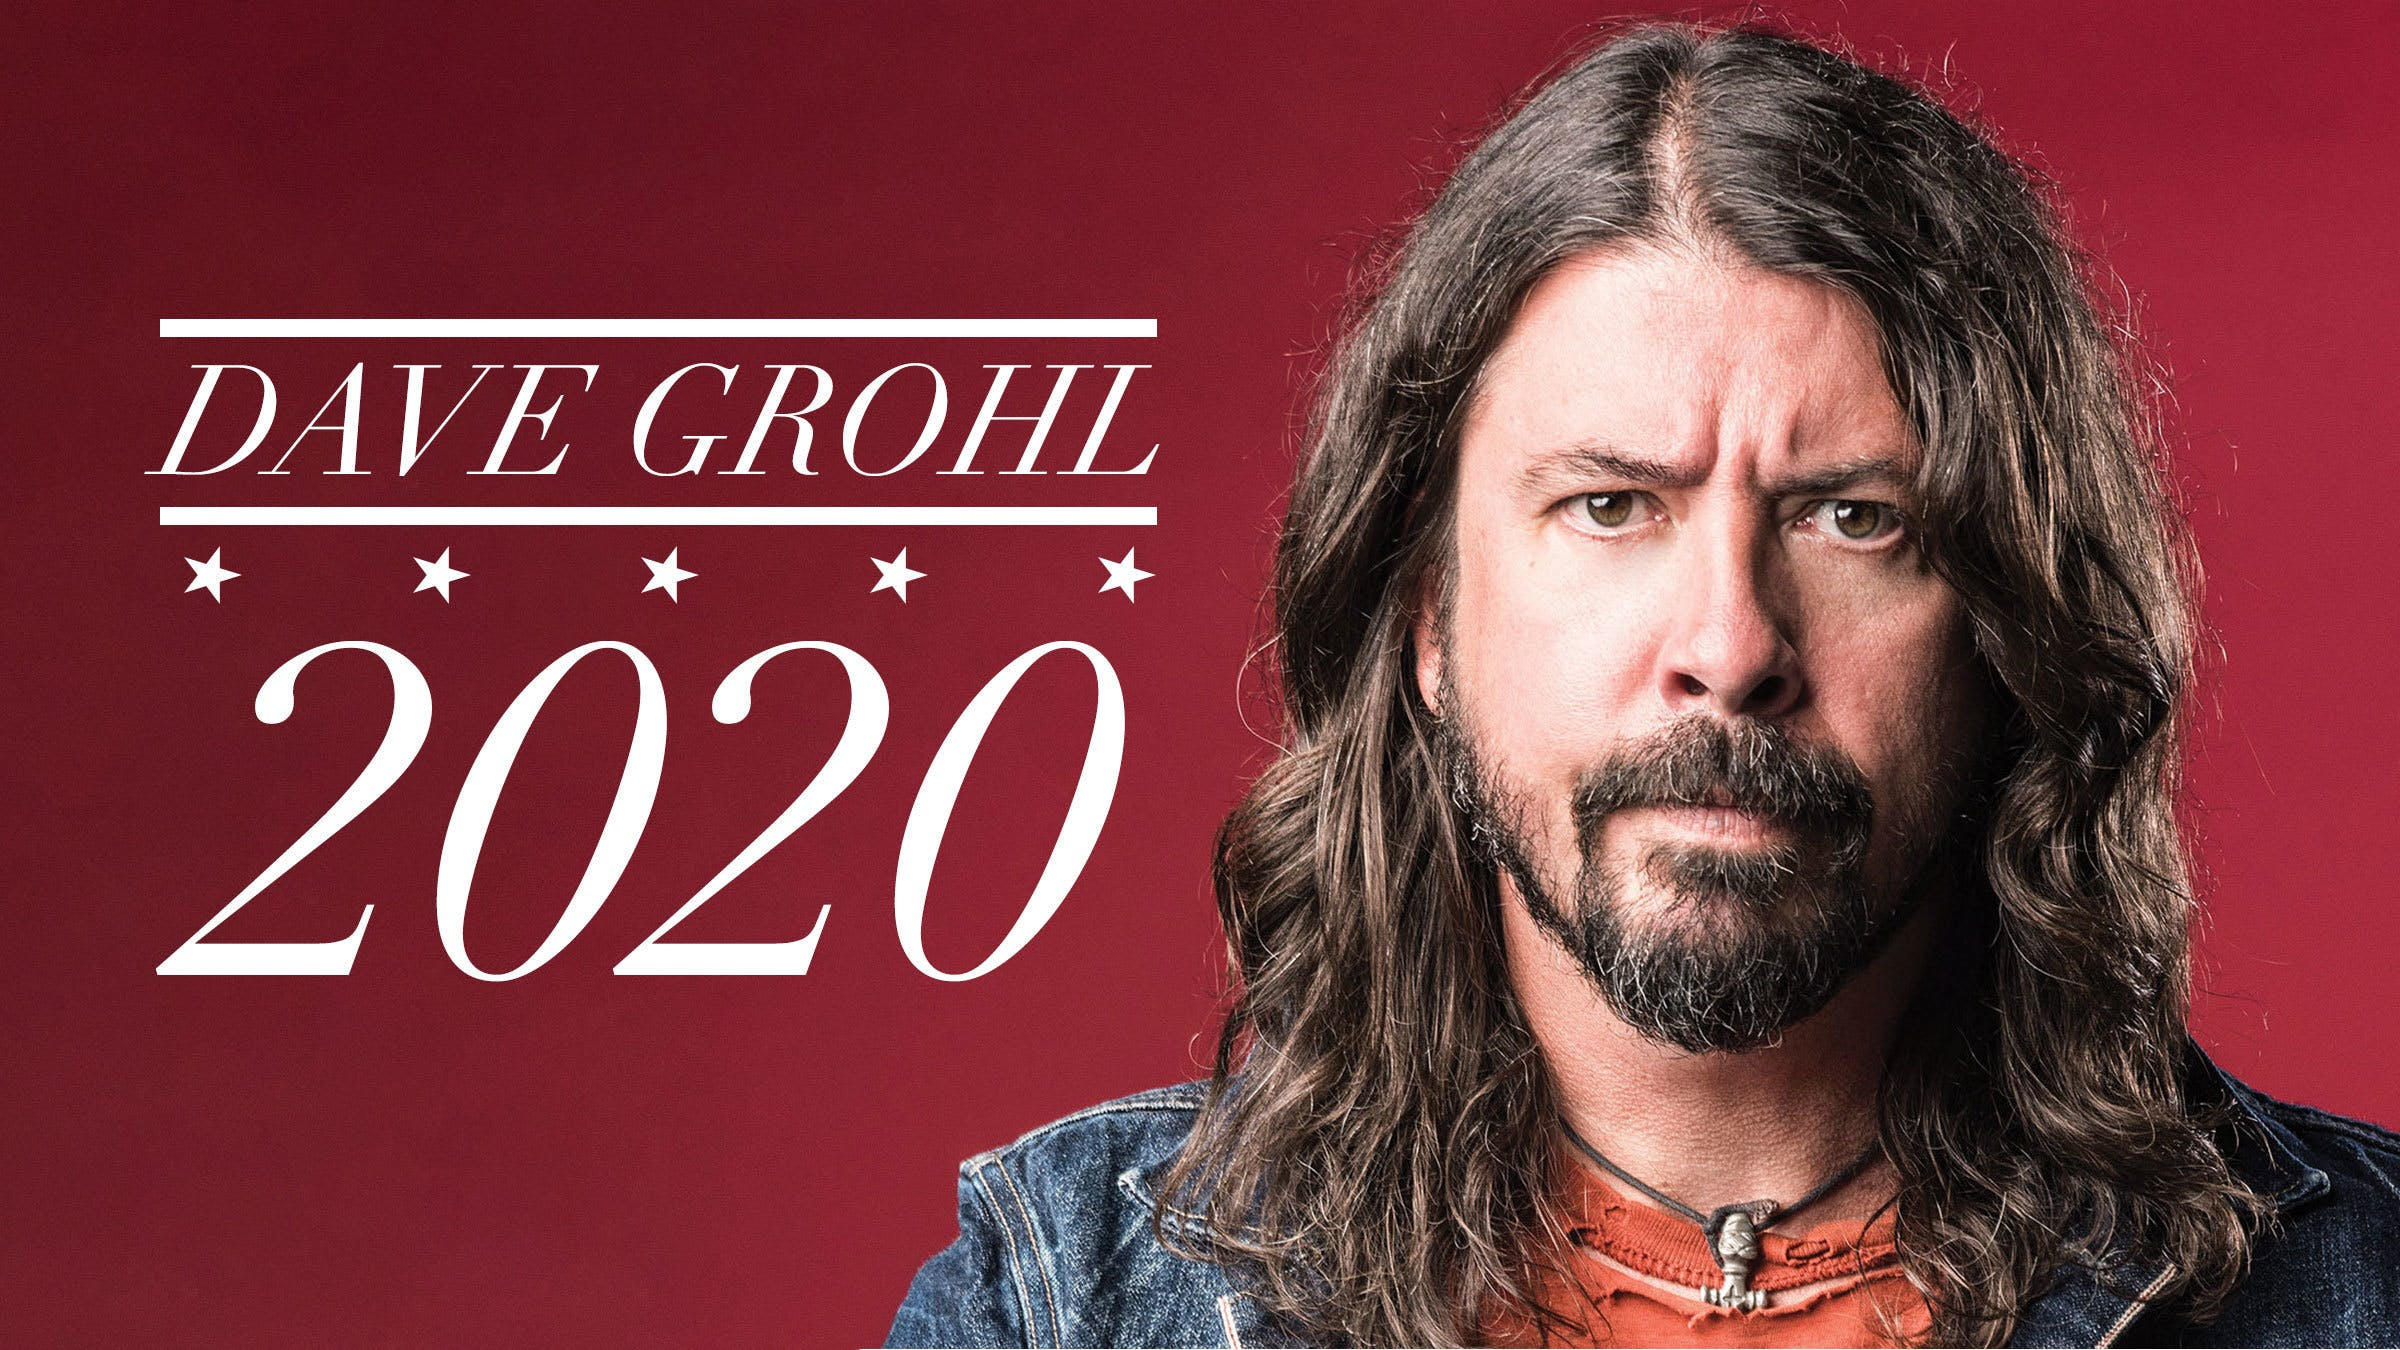 Foo Fighters Us Tour 2020 Dave Grohl Announces He Is Running For President in 2020 — Kerrang!